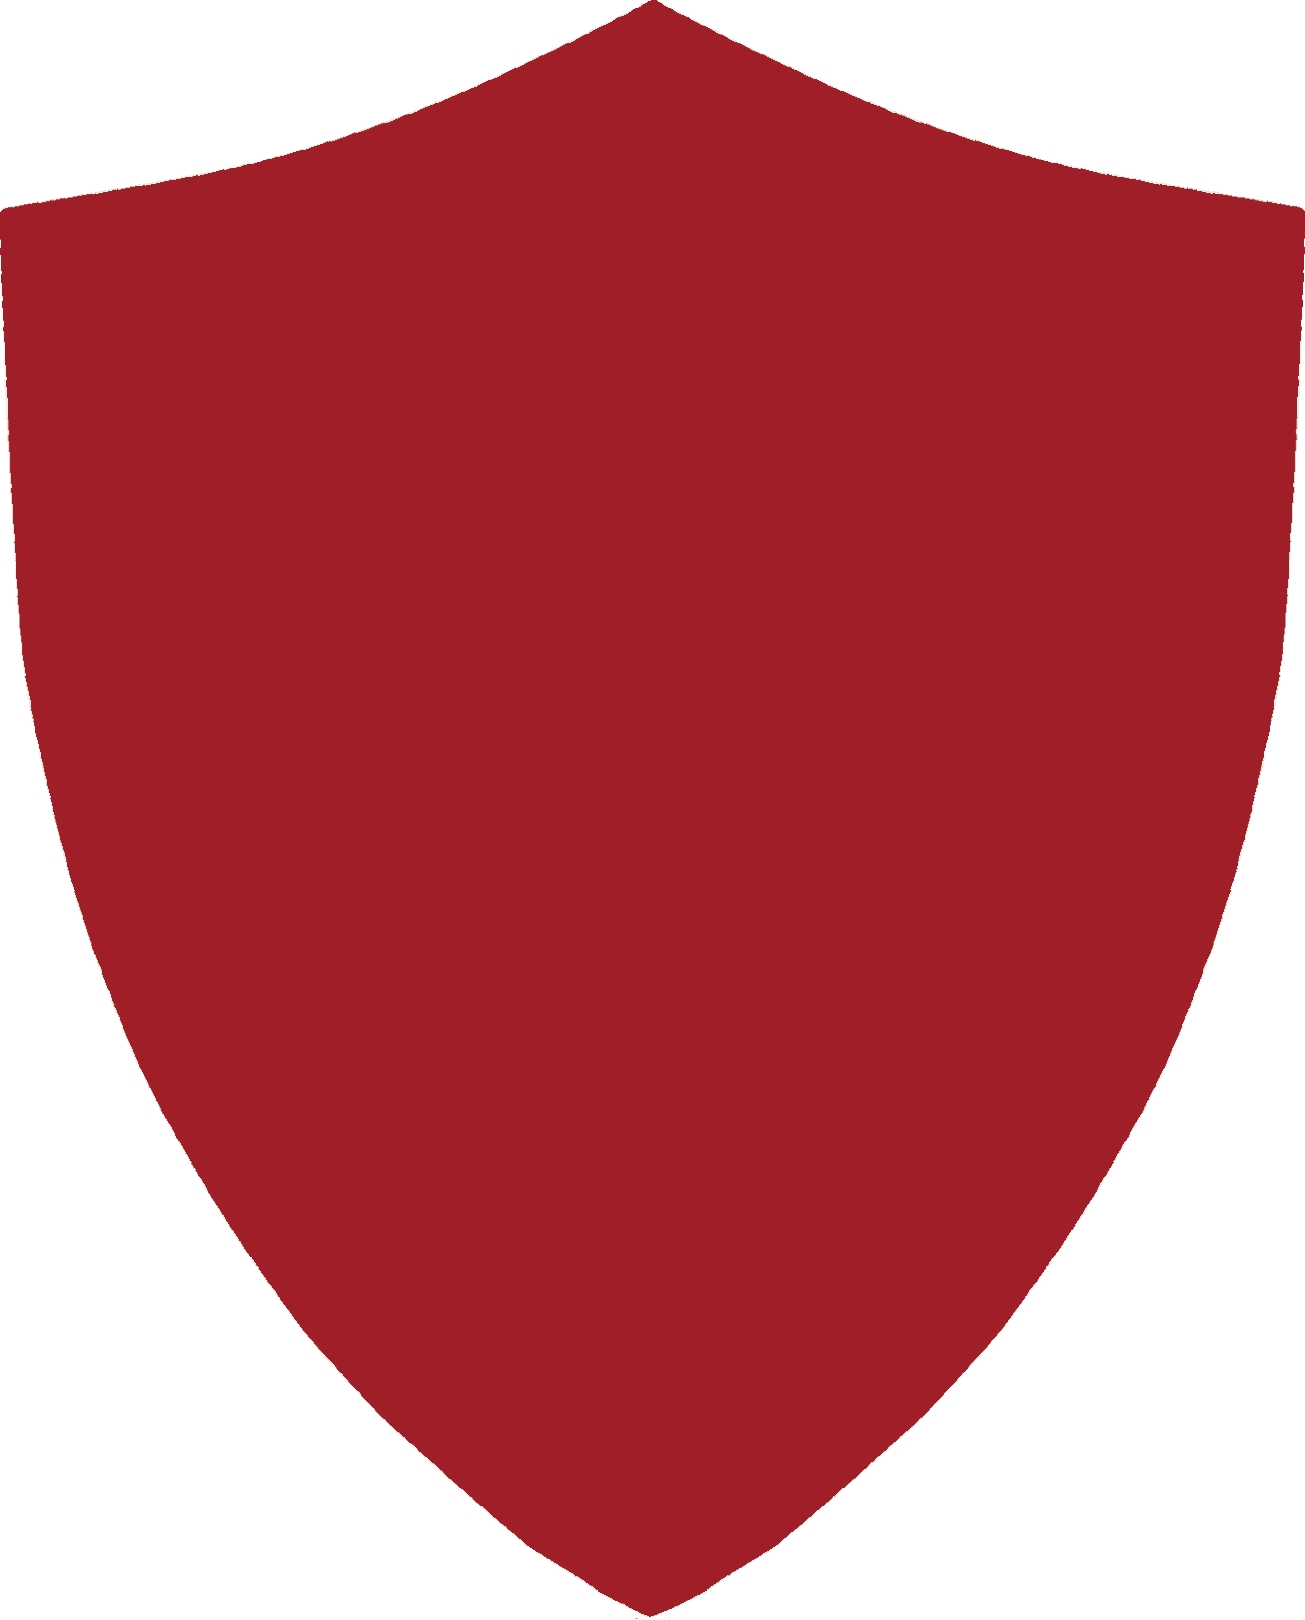 1305x1620 Free Shield Clipart Image